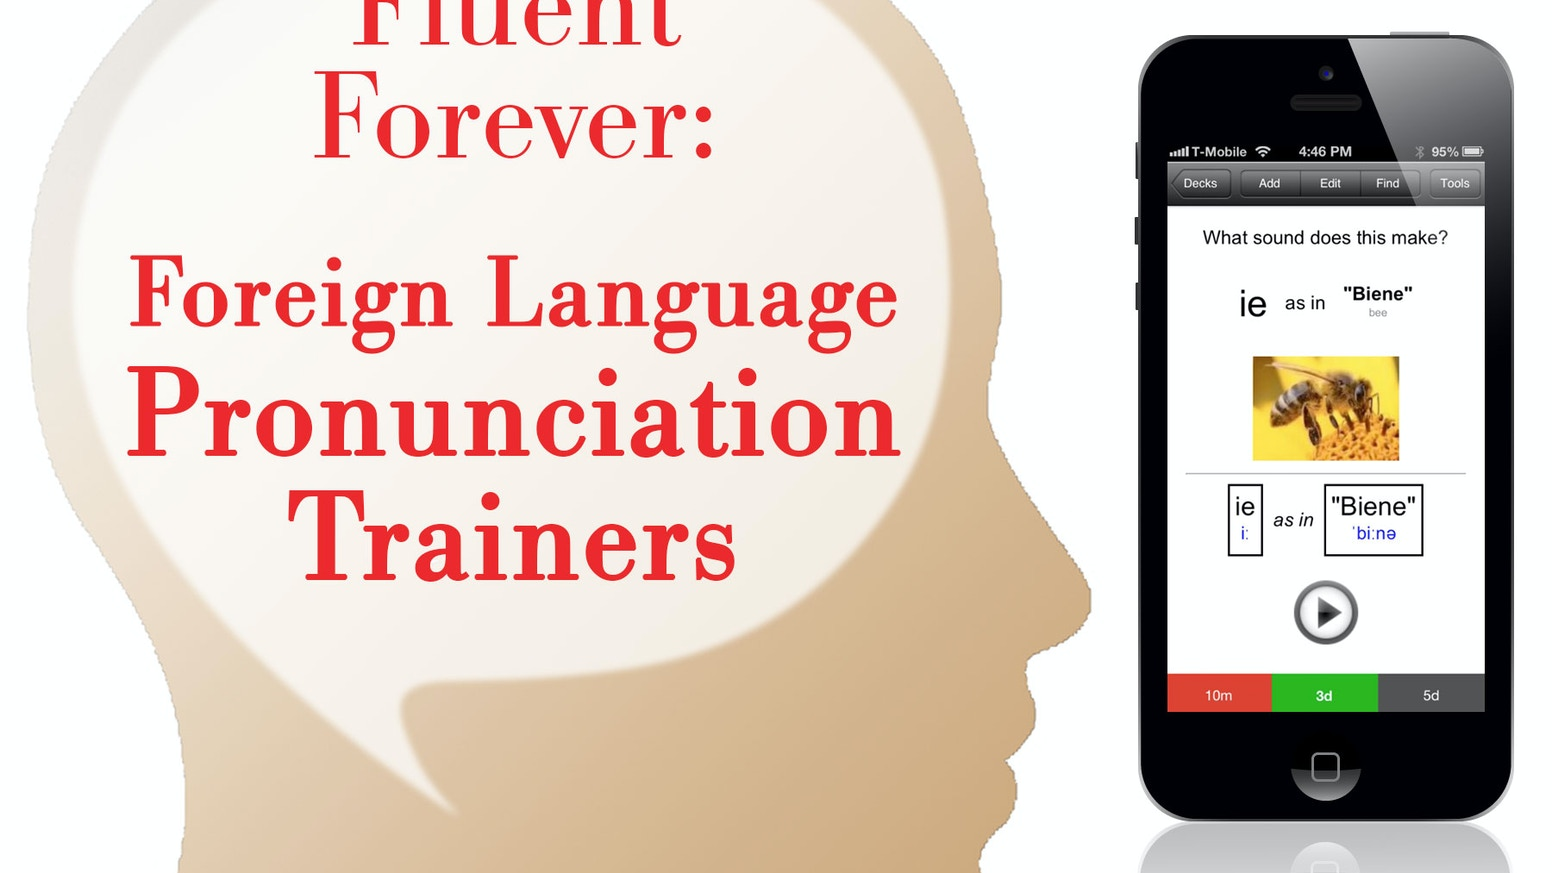 Fluent Forever: Foreign Language Pronunciation Trainers by